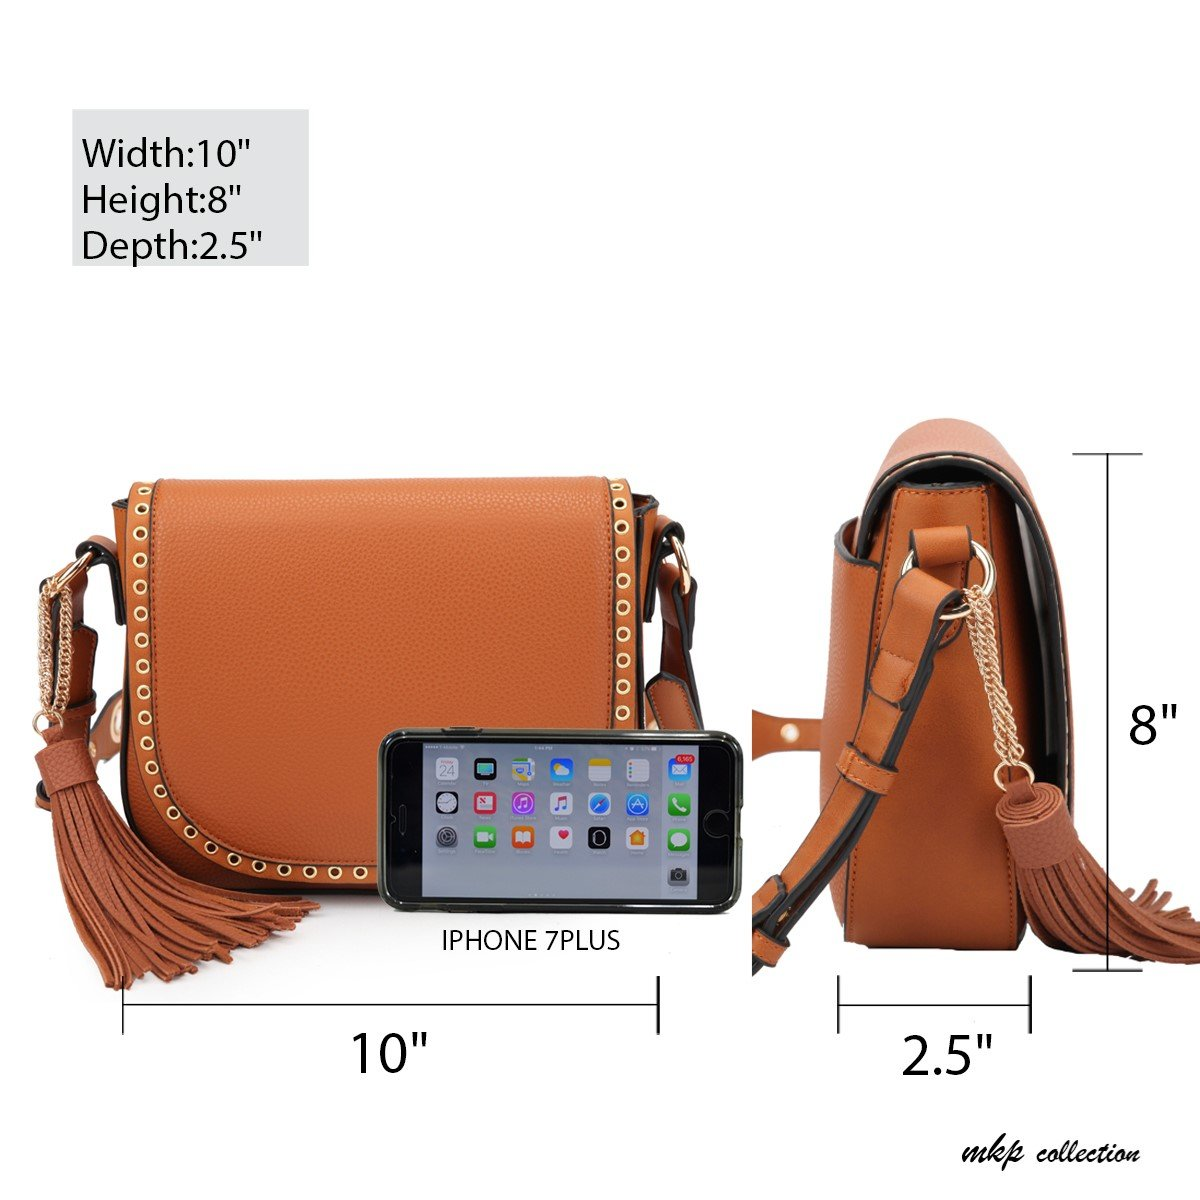 957a28129764 MKP Collection Fashion Cross-body bag~Front Flap Snap Closure ...